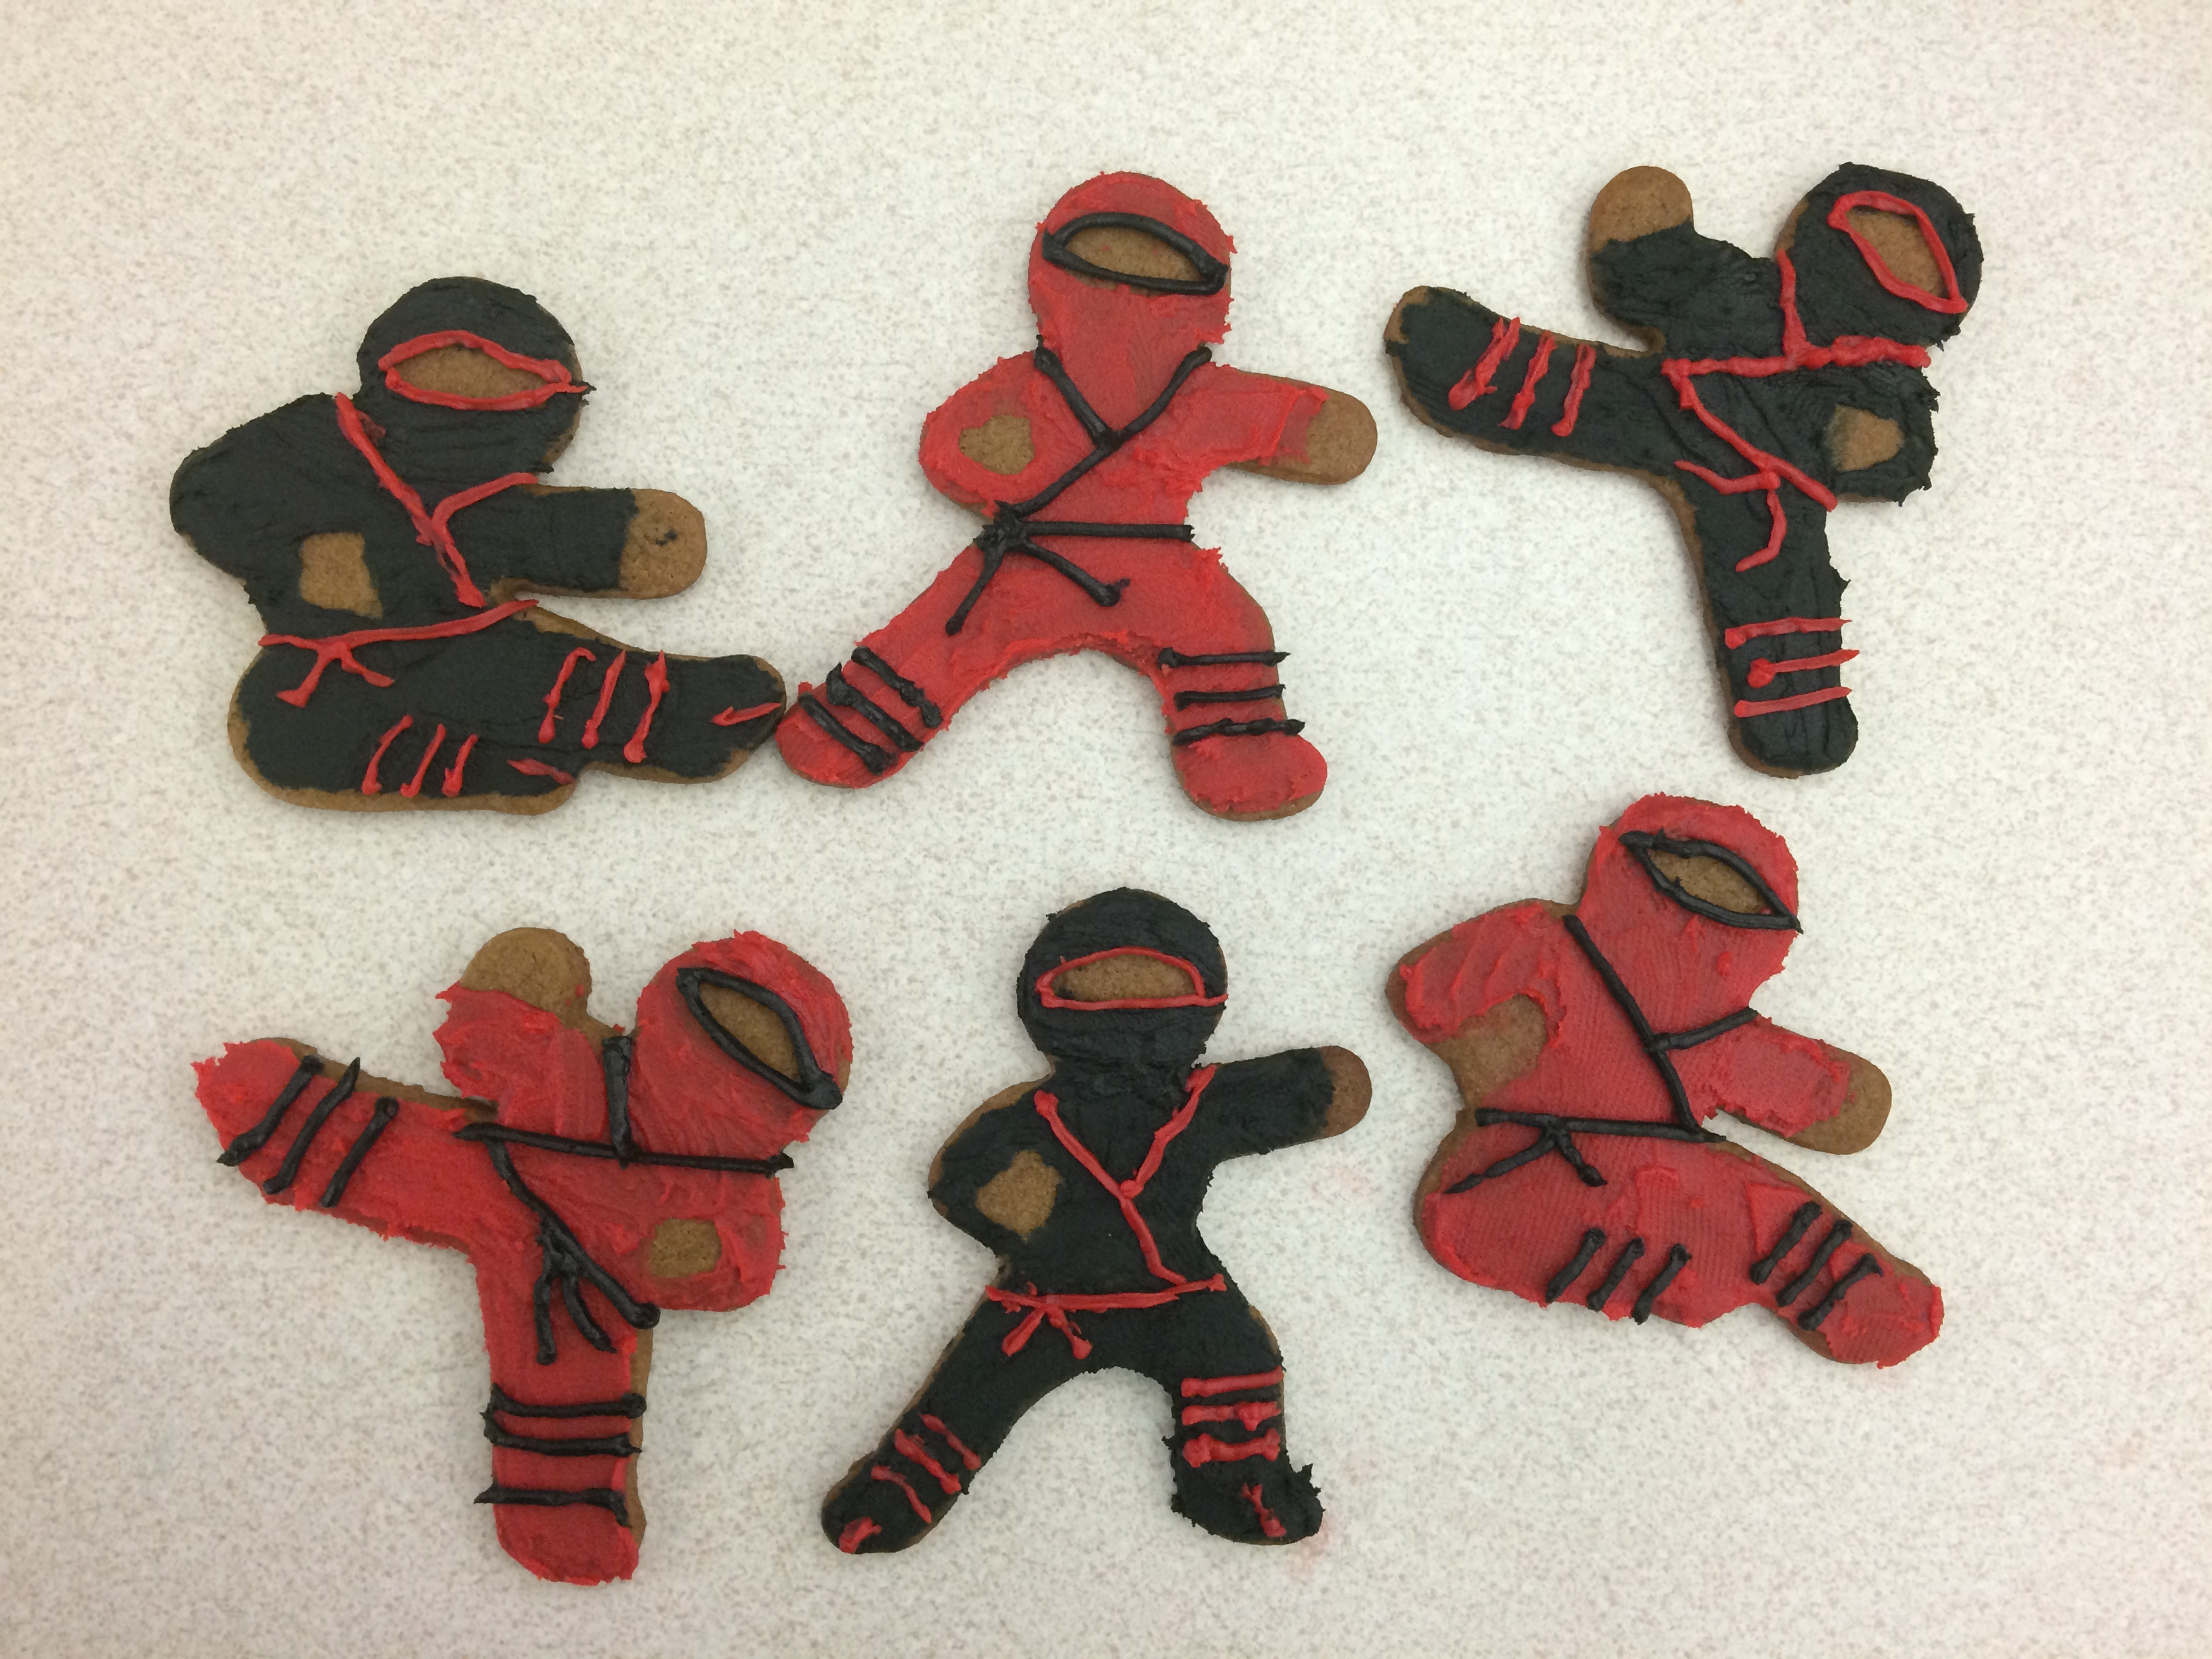 Finished Ninjabread Men Cookies